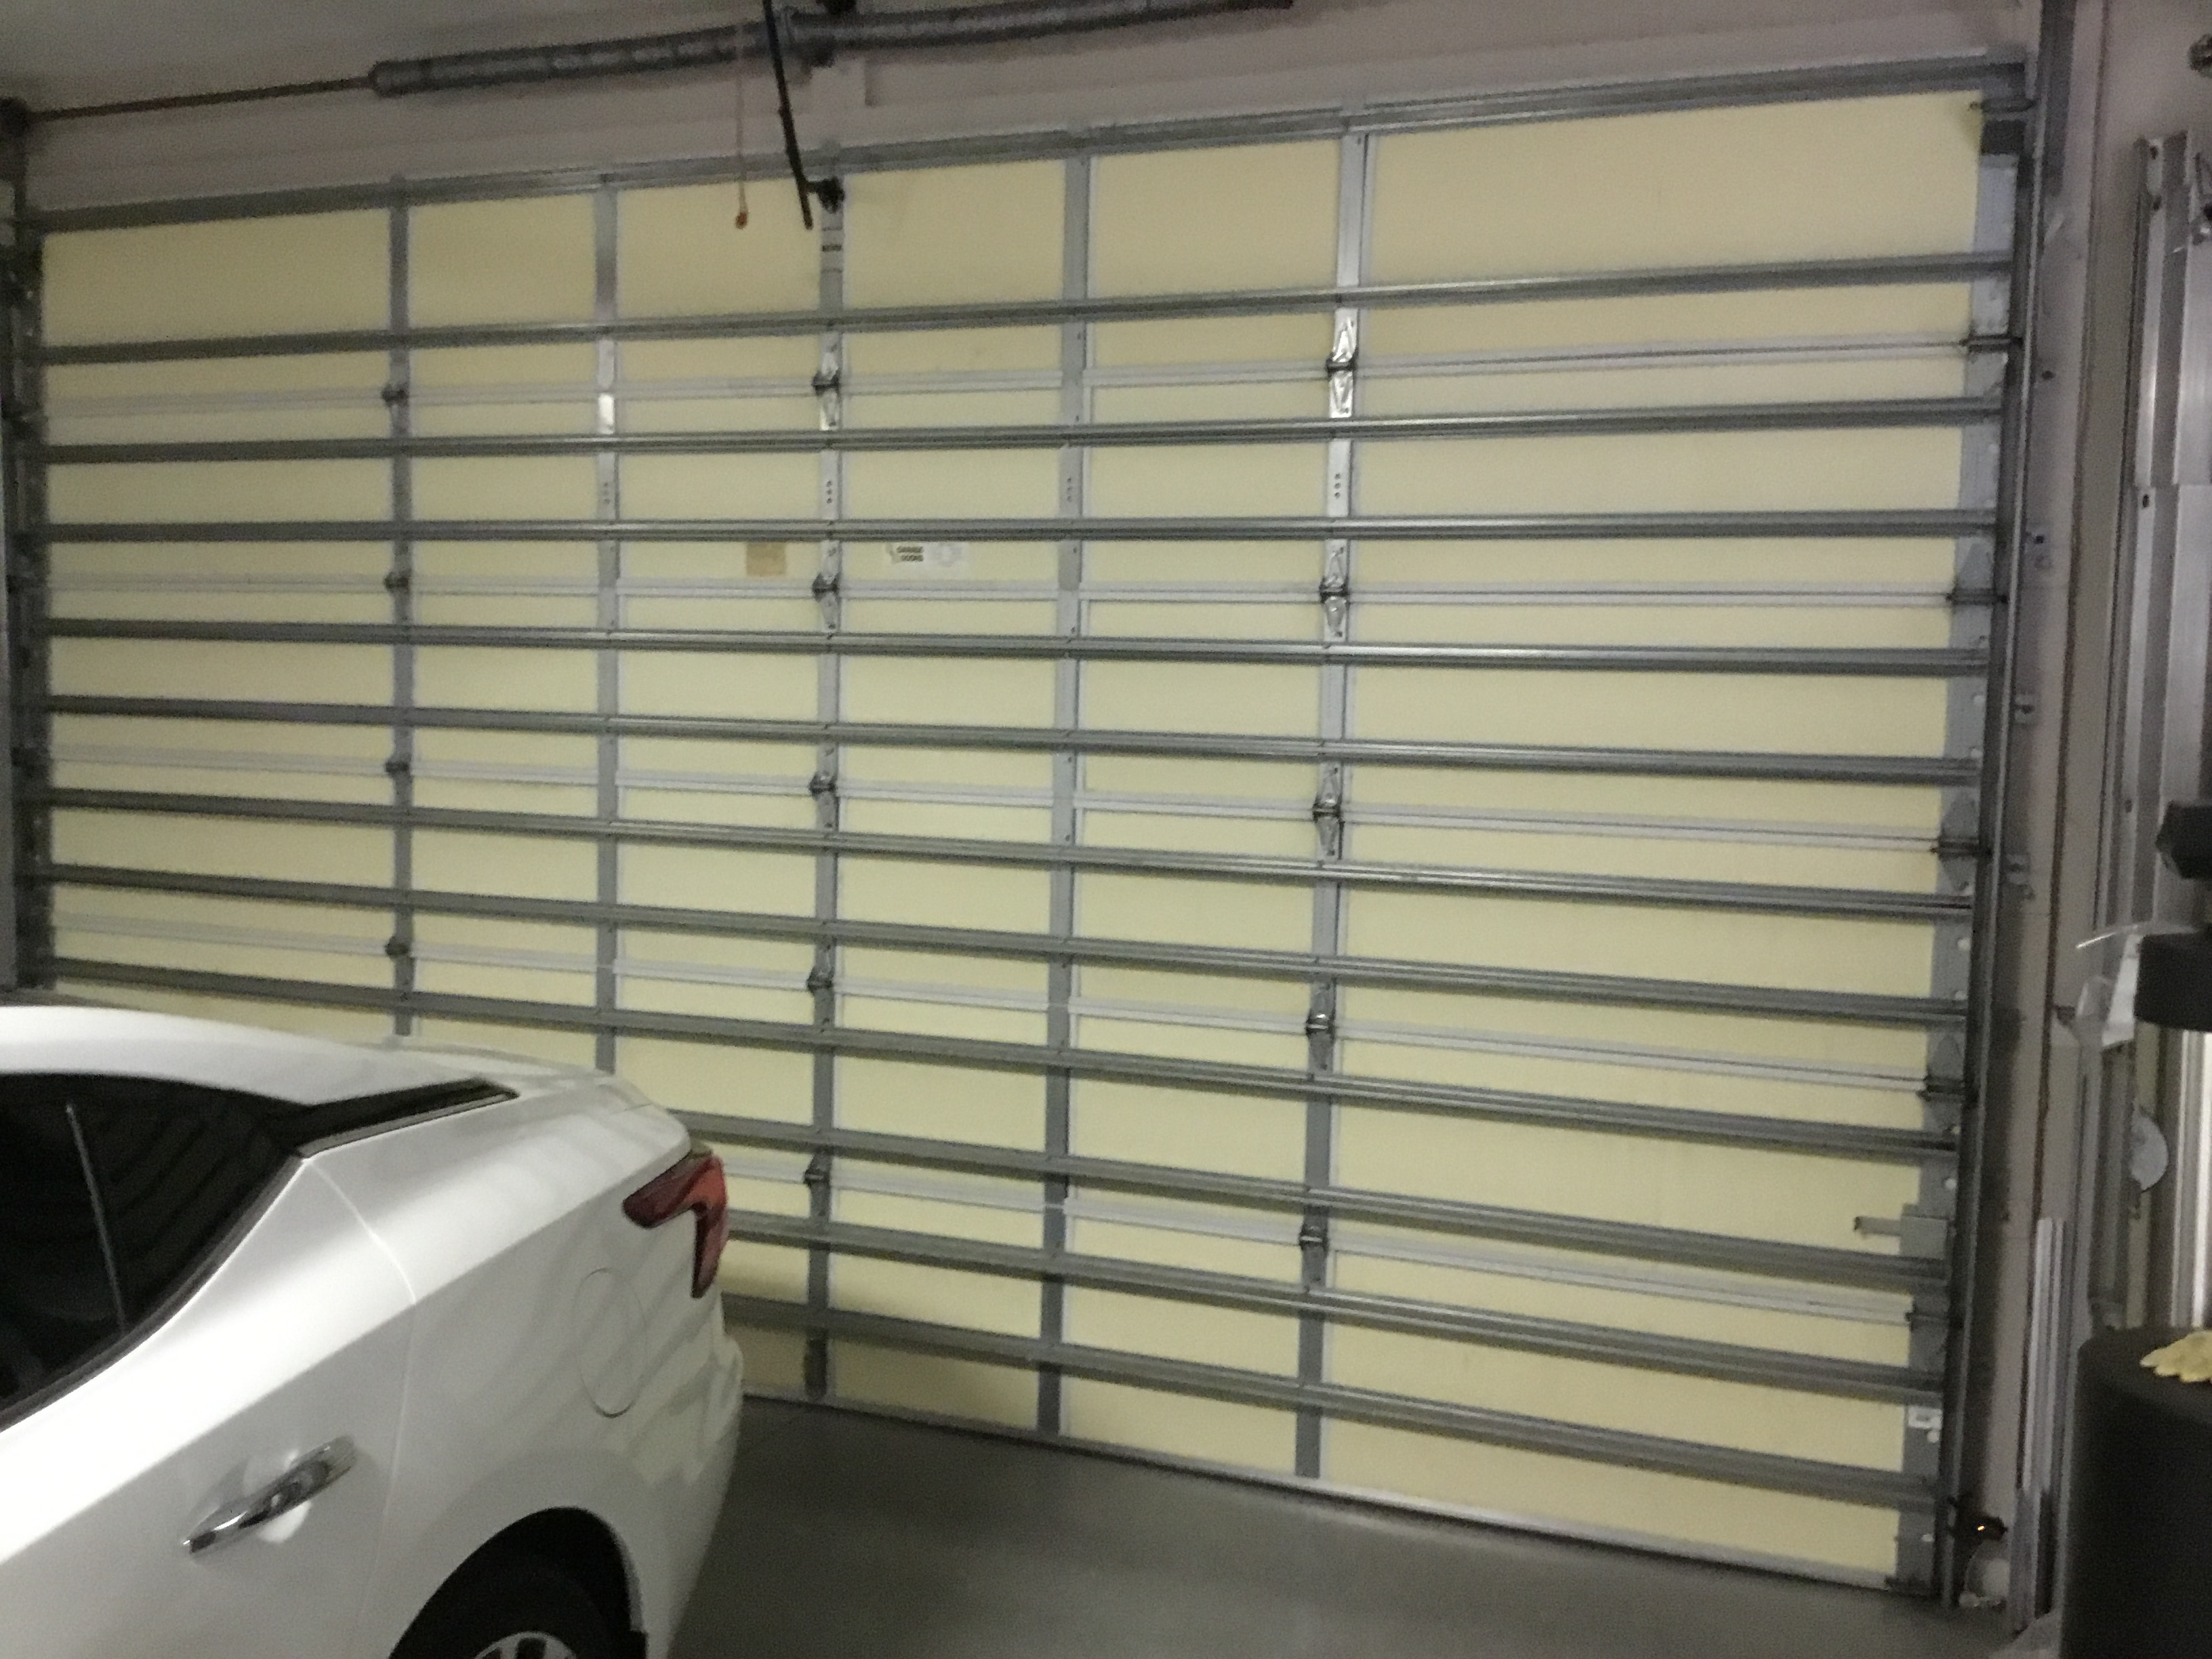 How to perform wind mitigations page 90 internachi for Florida wind code for garage doors